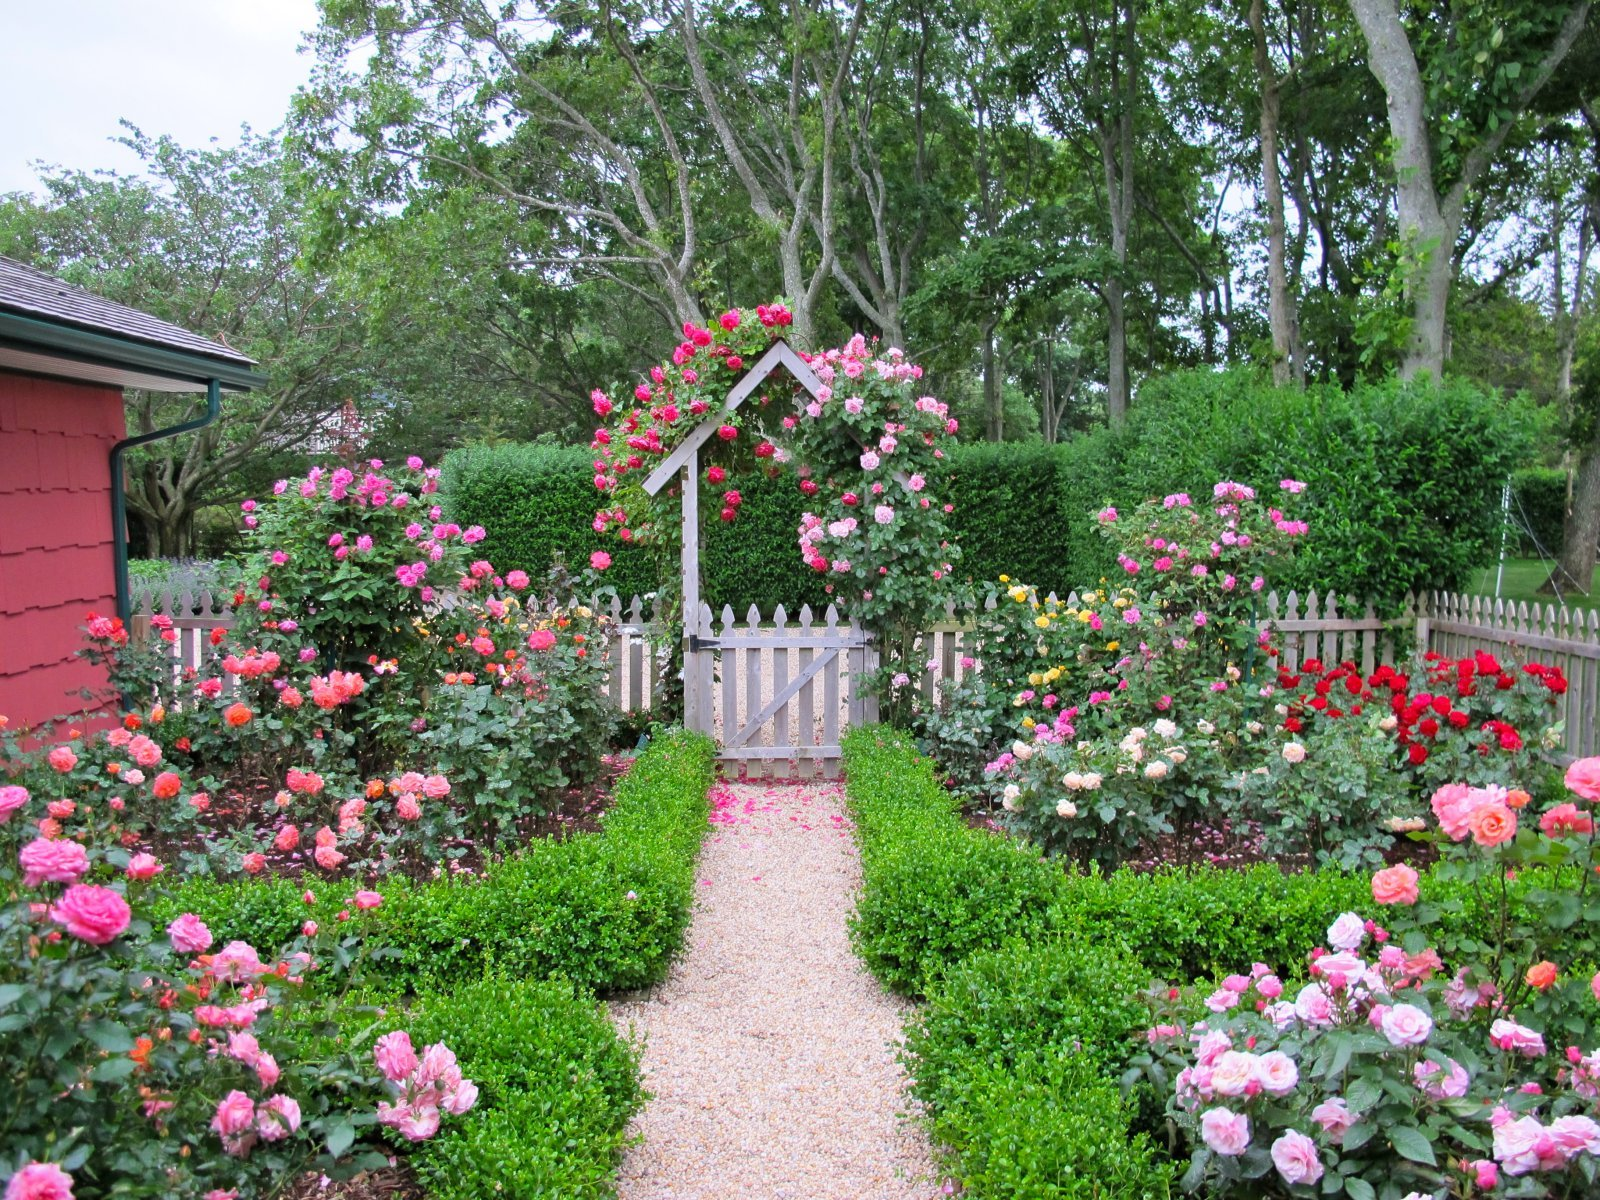 cottage garden design with roses  wilson rose garden, Natural flower